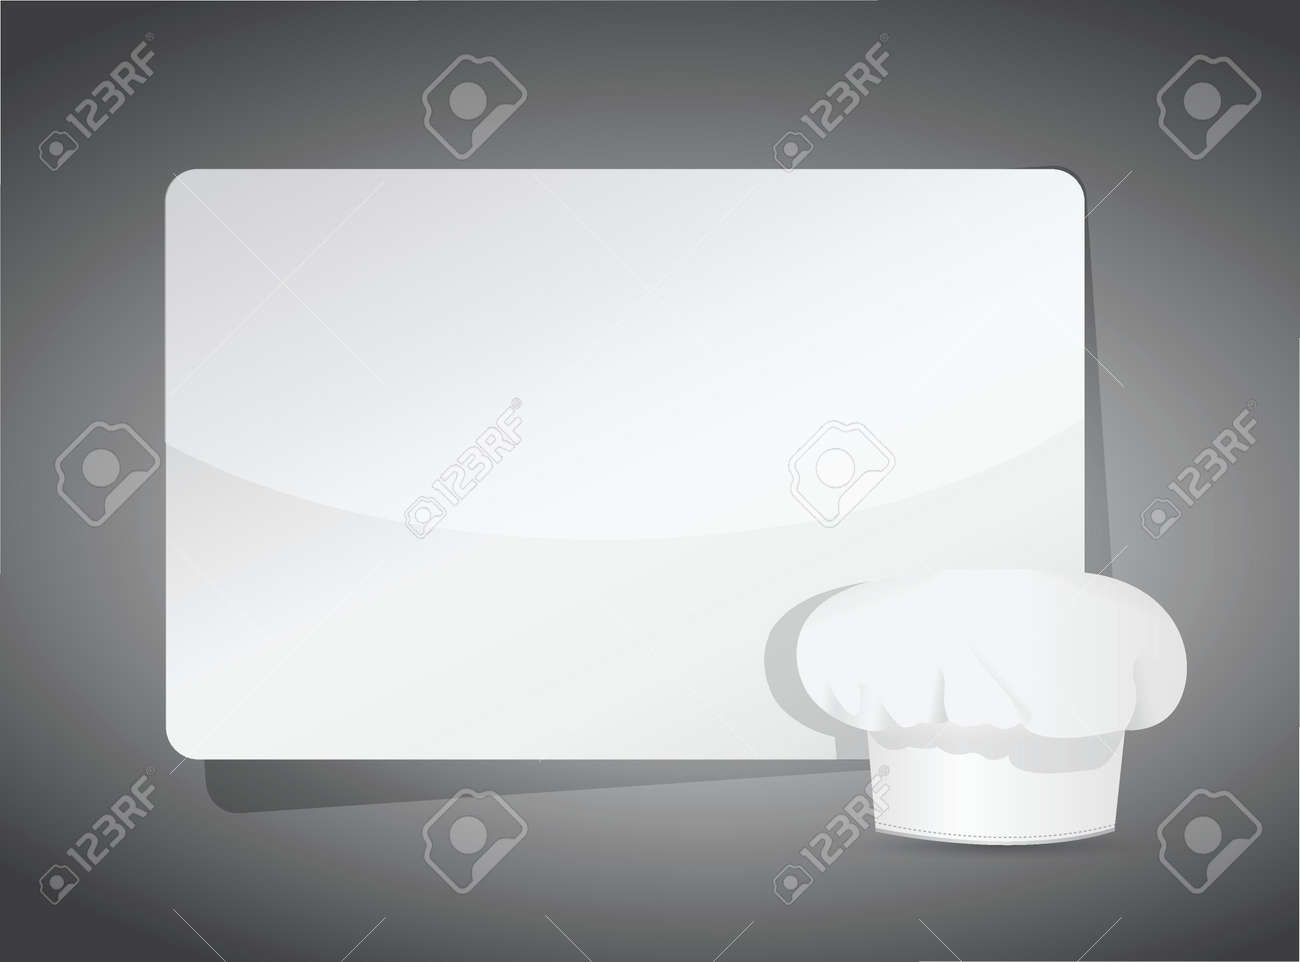 recipe template - chef hat on the blank paper sheet, illustration